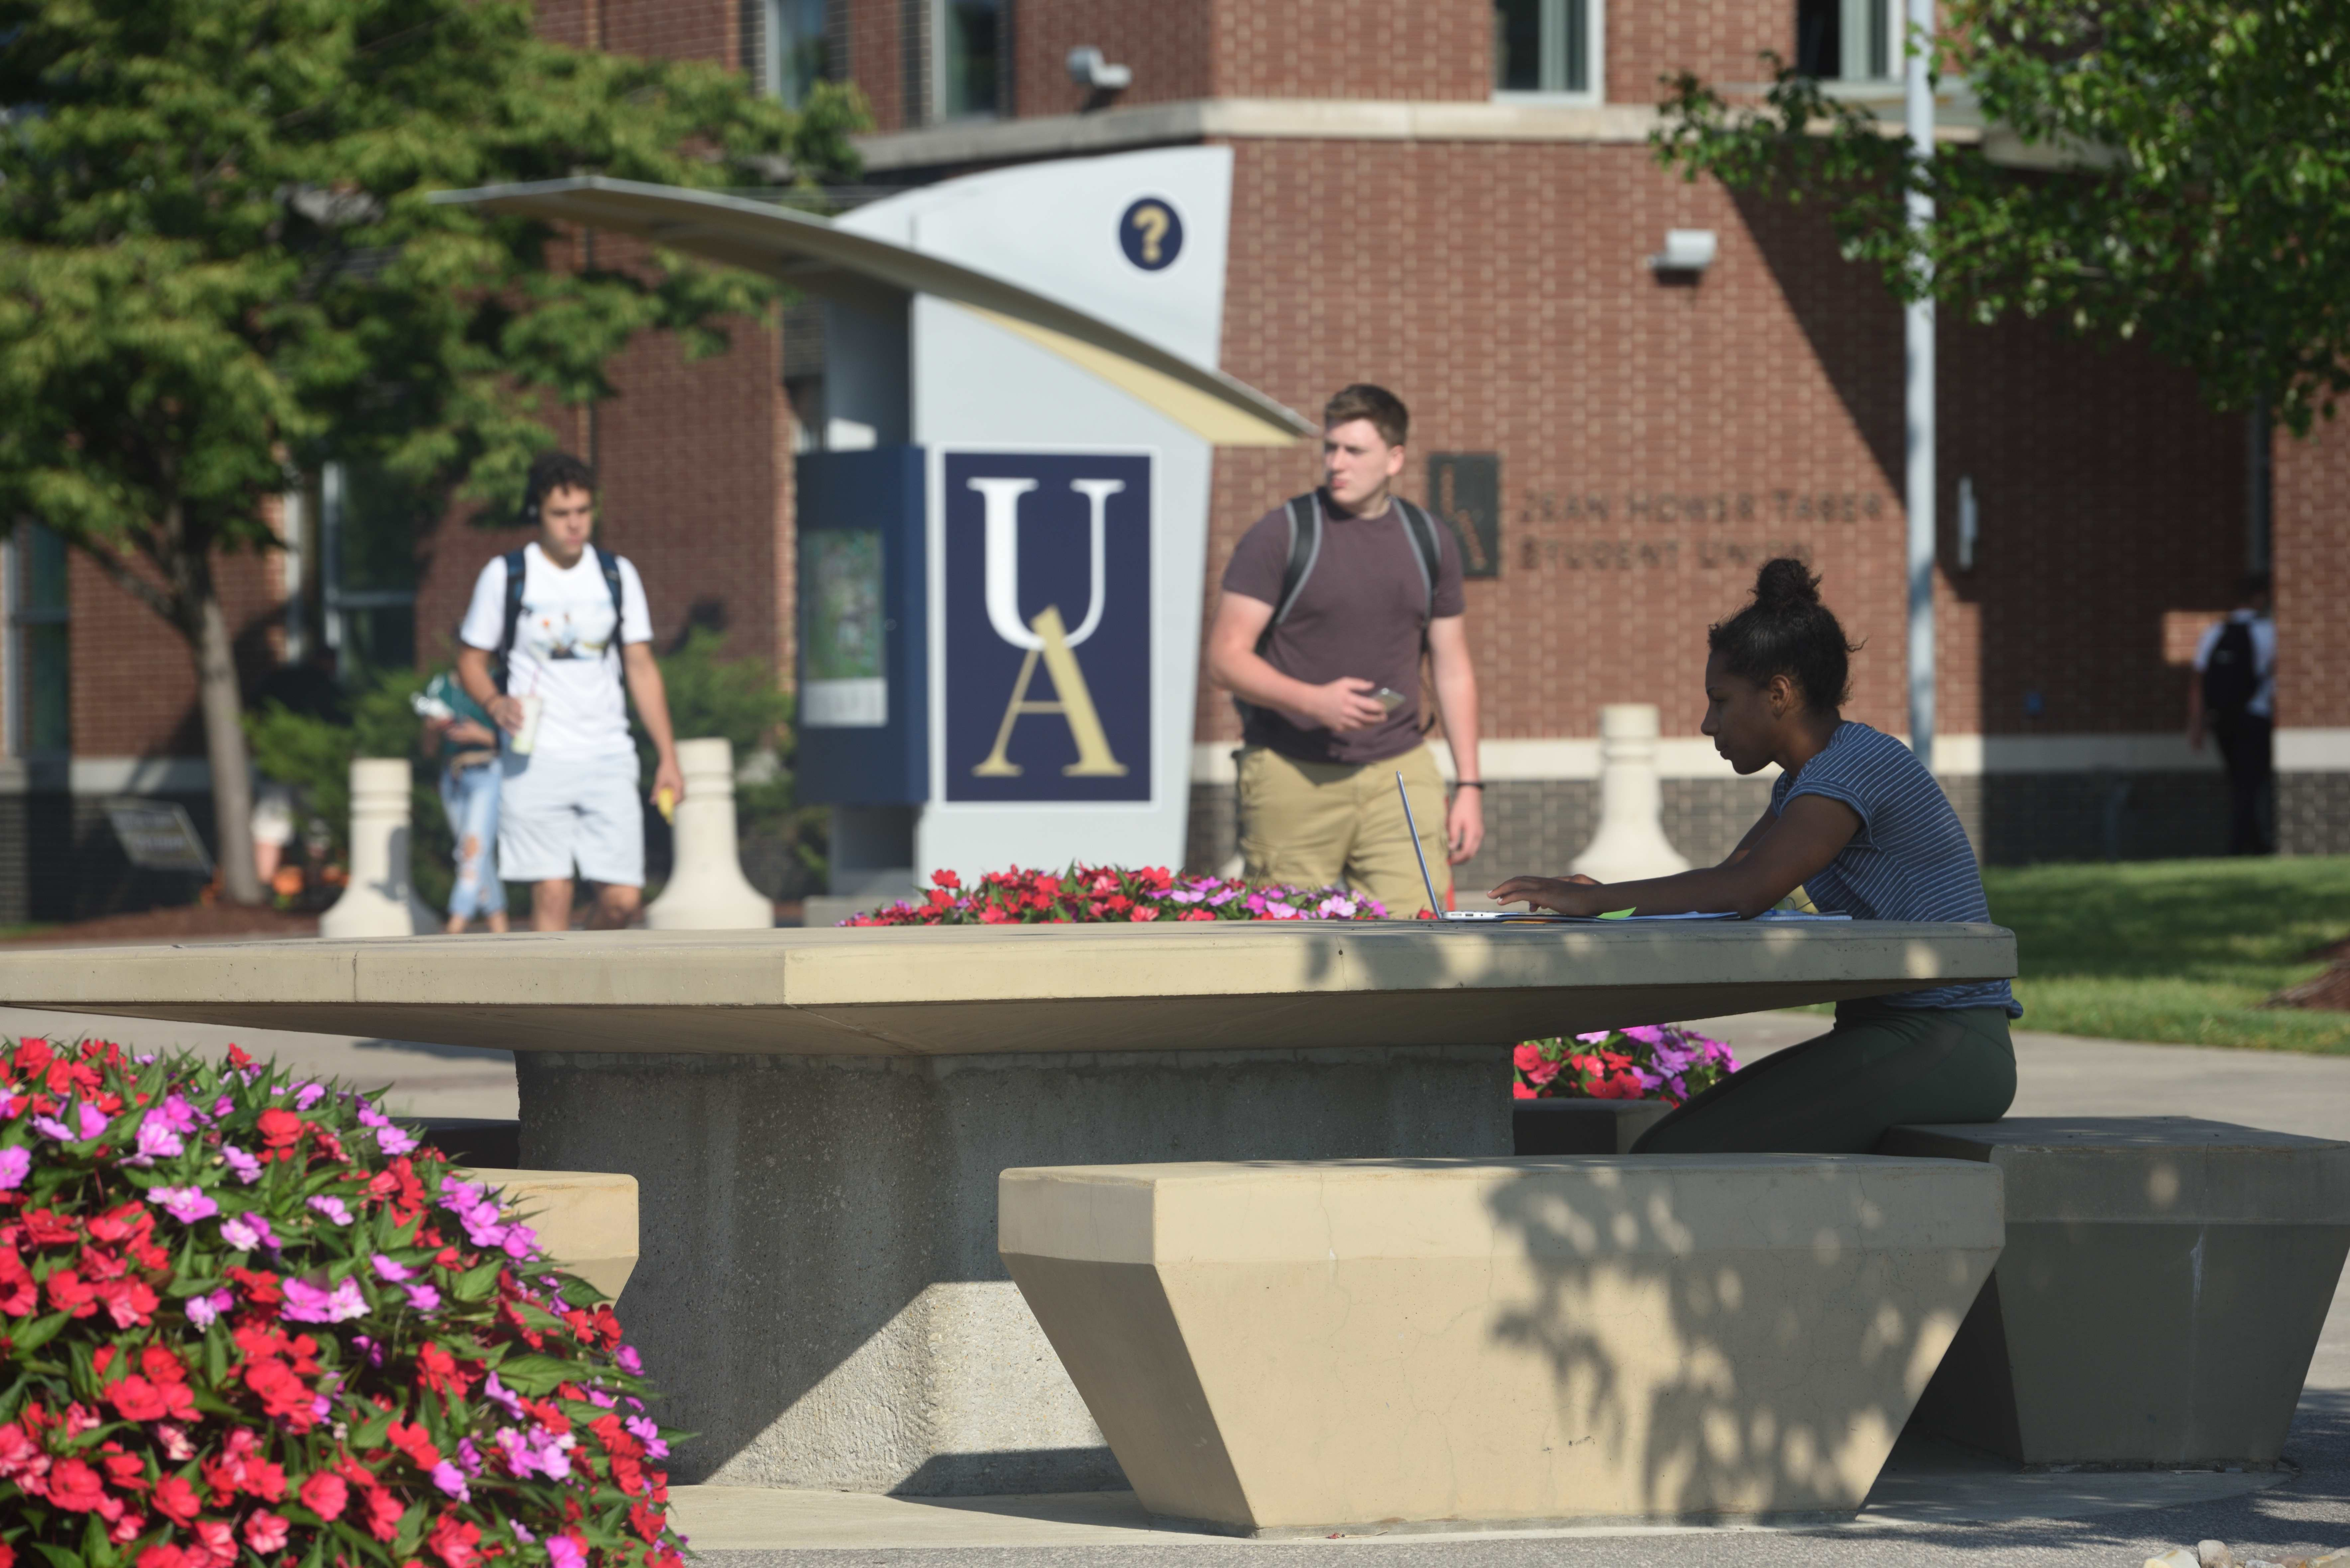 Morning Headlines: U Of A To Cut 6 Colleges; Cleveland To Intended For University Of Akron Fall 2020 Calendar